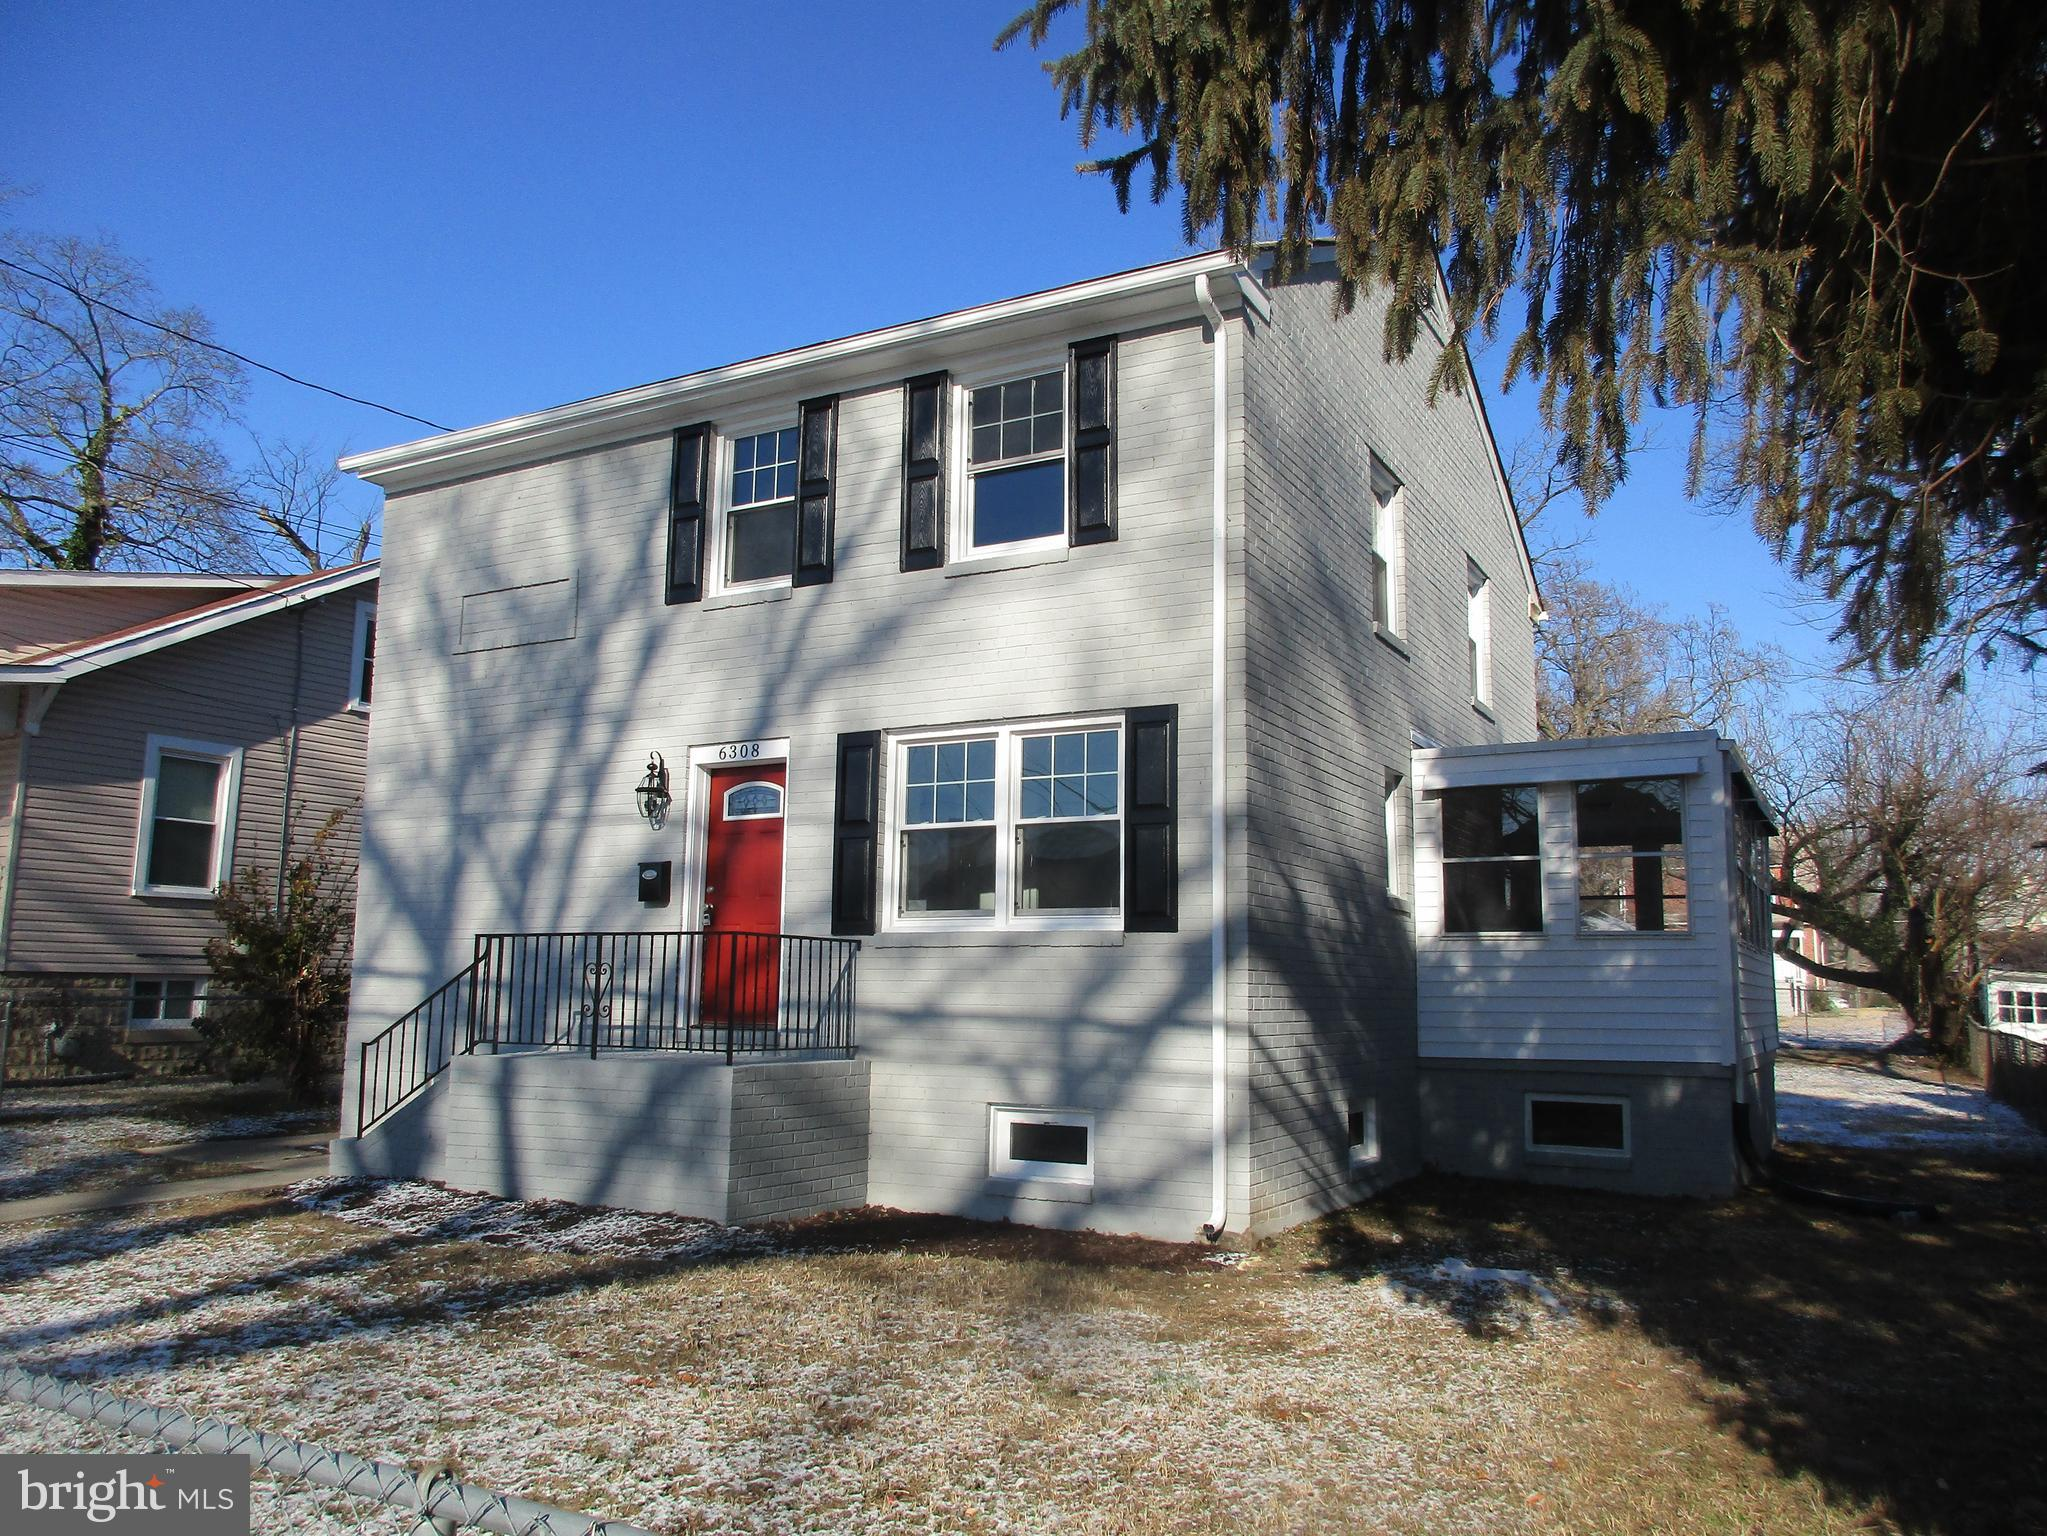 6308 GATEWAY BOULEVARD, DISTRICT HEIGHTS, MD 20747